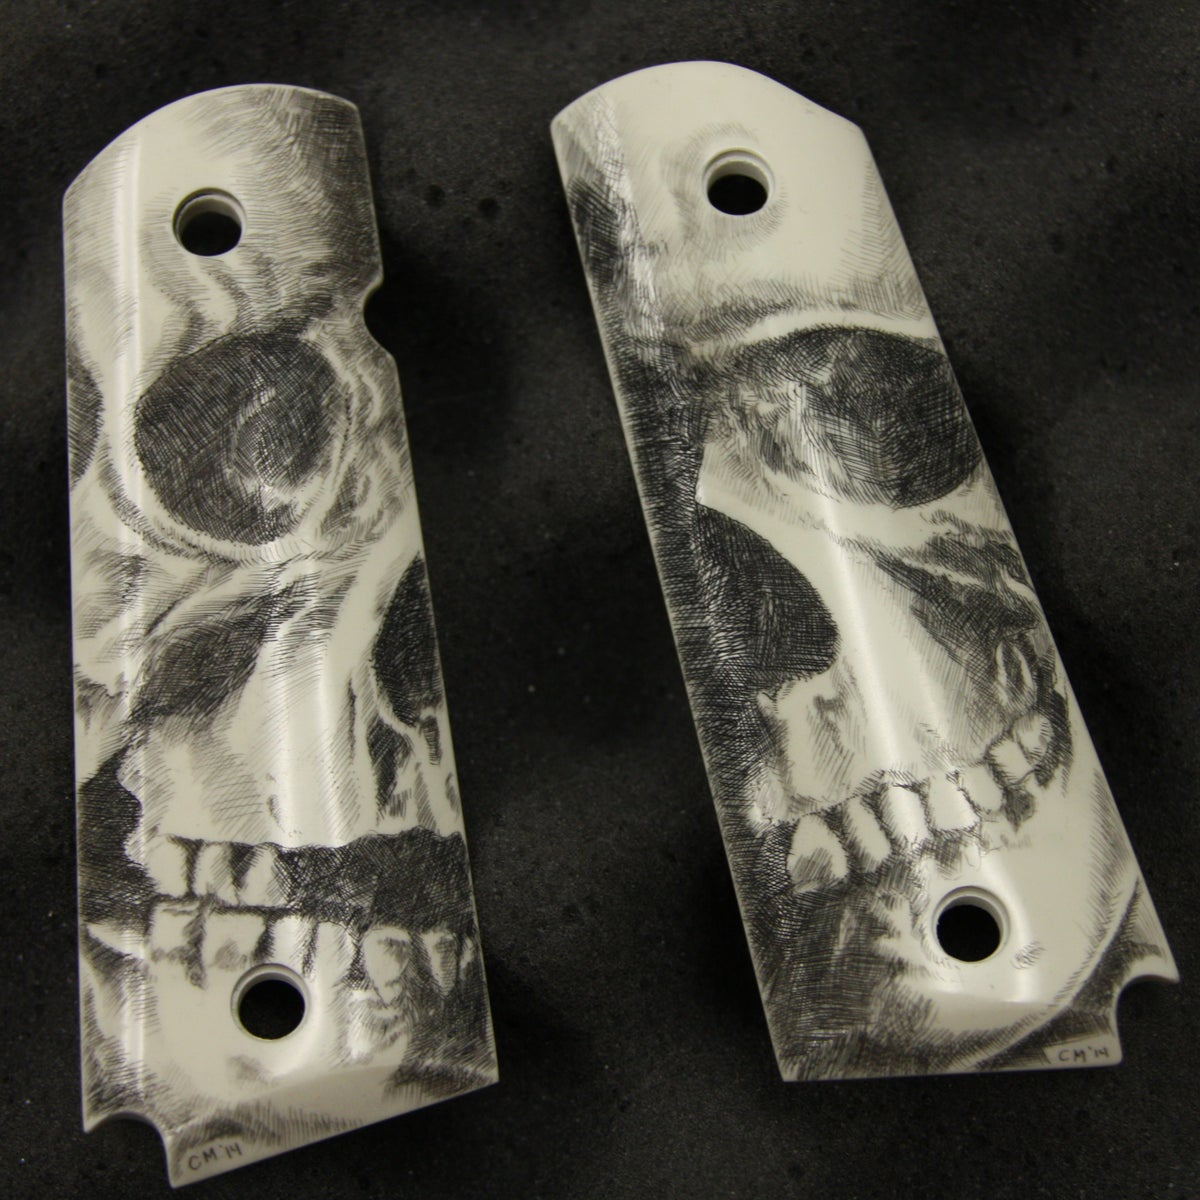 Scrimshaw Skull Grips 1911 Chris Mead Tattoos